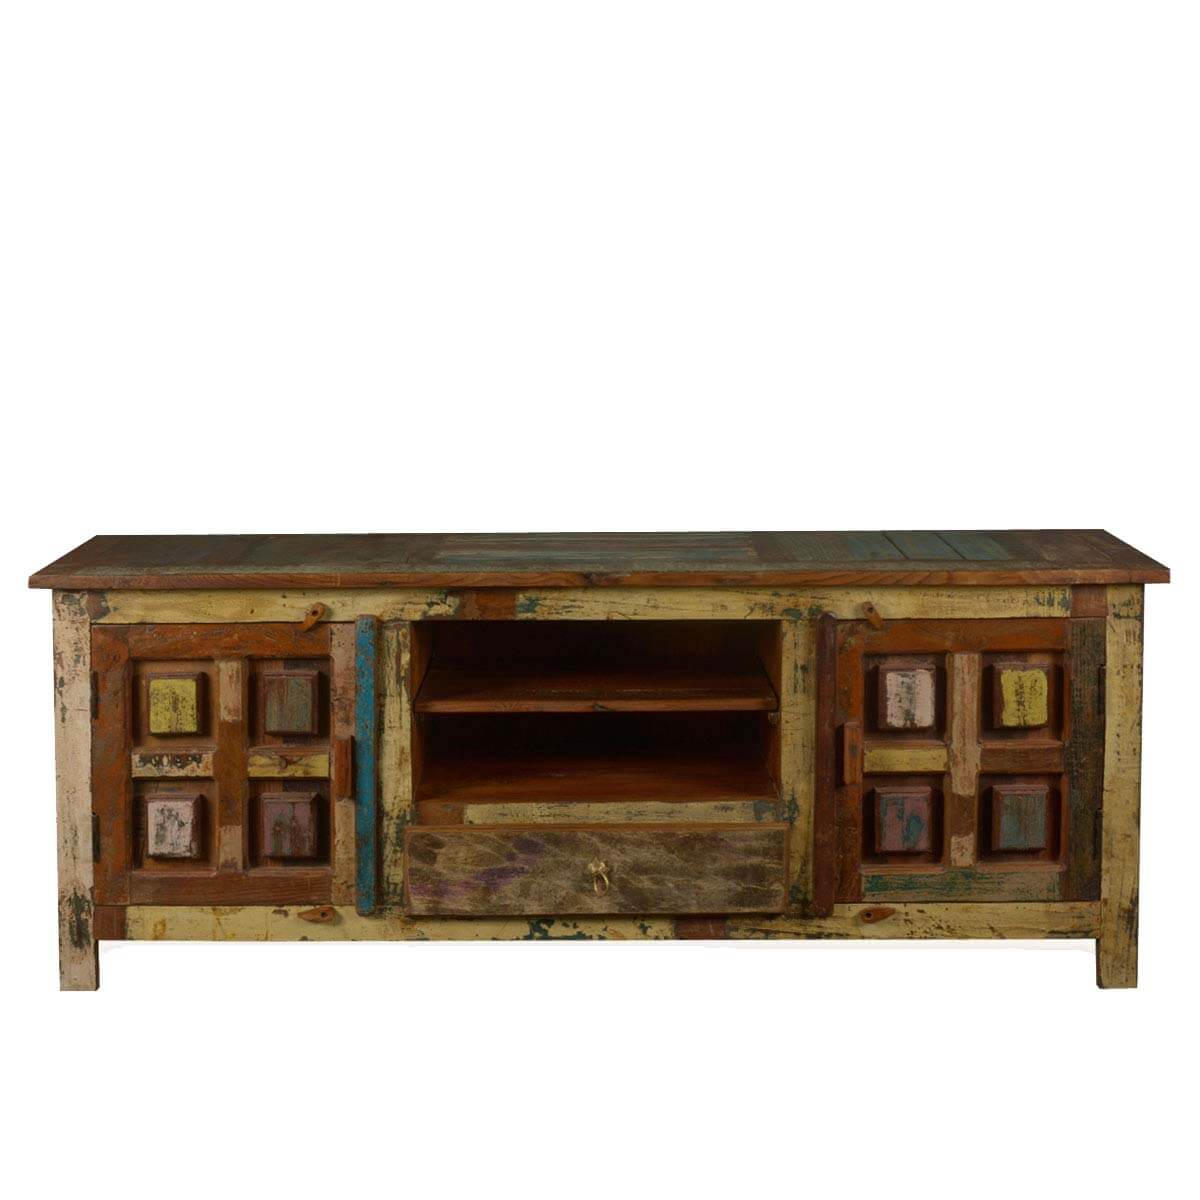 Solid Wood Handcrafted Rustic Tv Stand Media Console